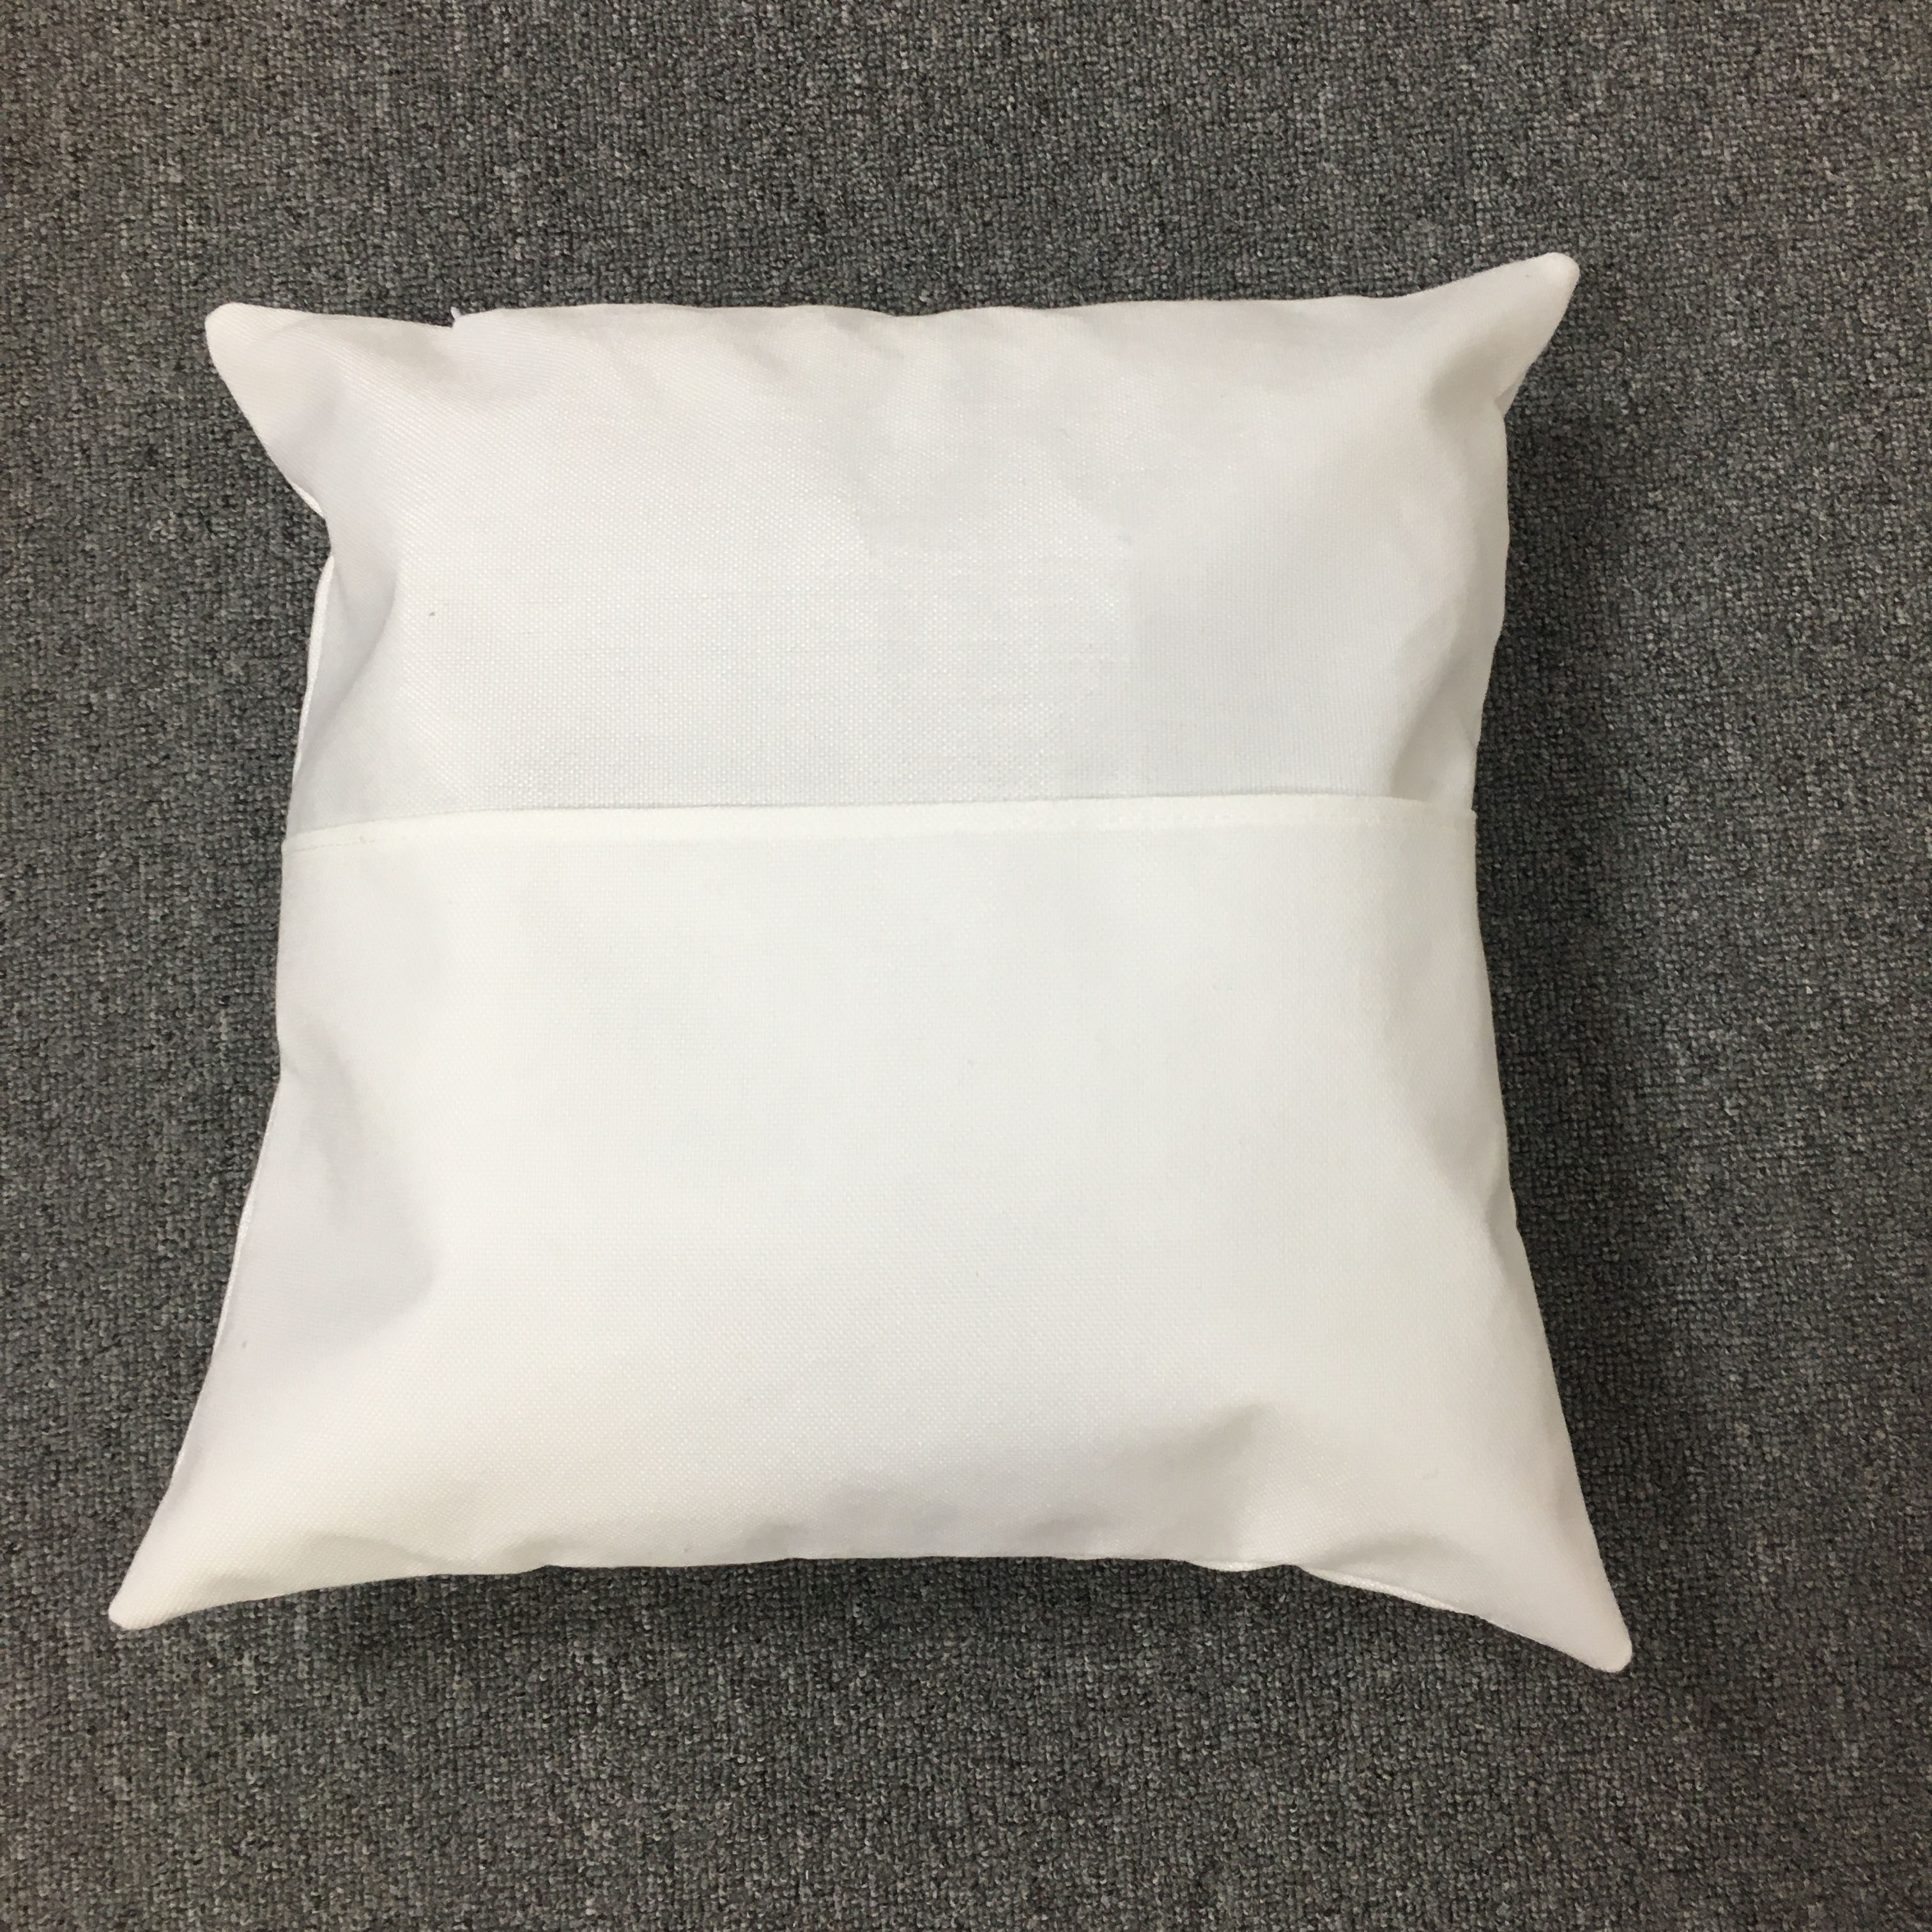 100pcs diy pillowcase with pocket sublimation blank pillow covers linen polyester cushion covers sofa throw pillows decoration